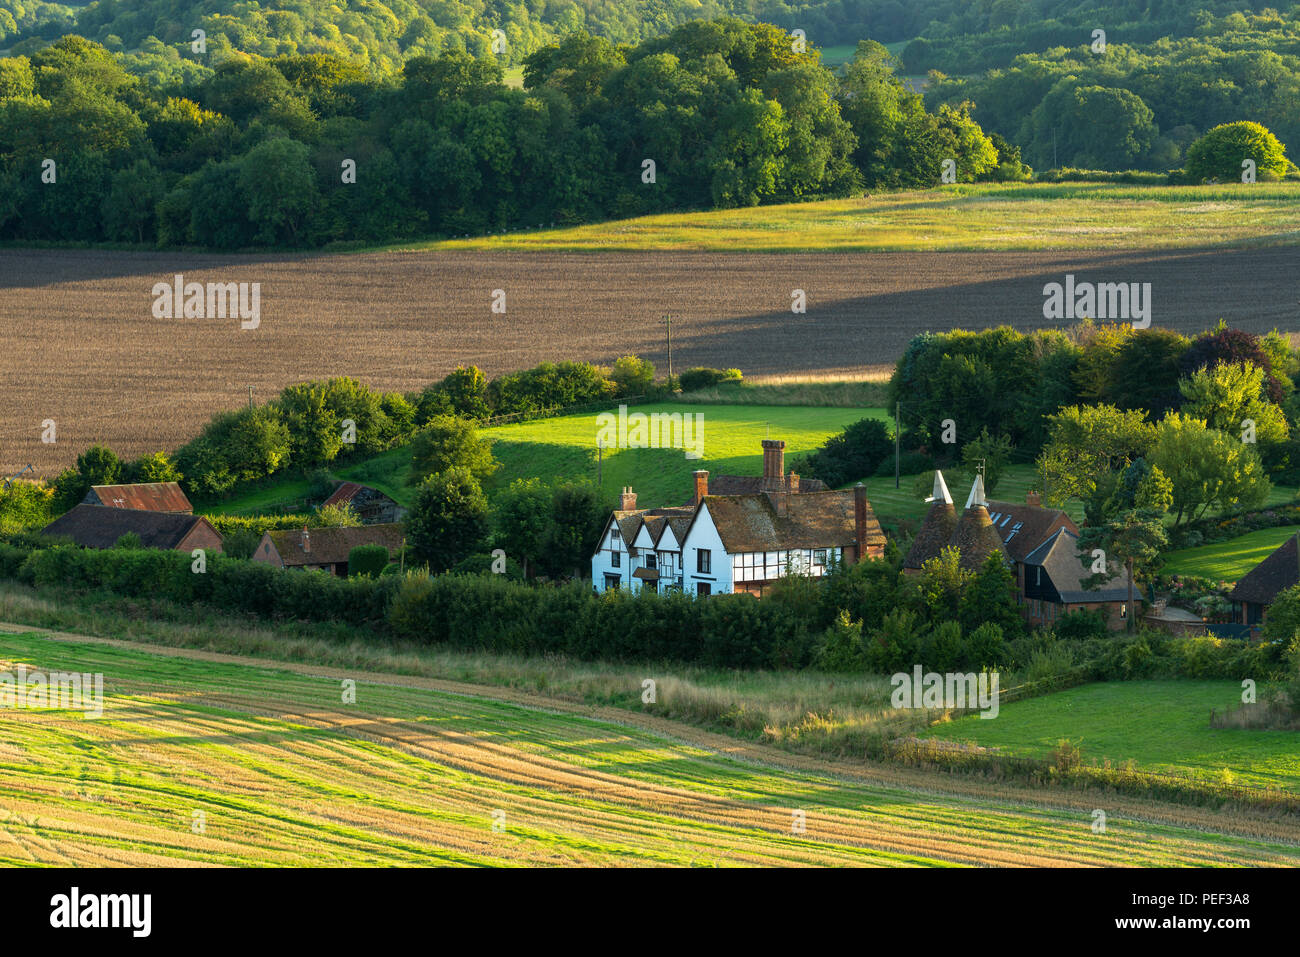 Winchcombe Manor, a grade II listed country house set in the Kent Downs Area of Outstanding Natural Beauty. - Stock Image